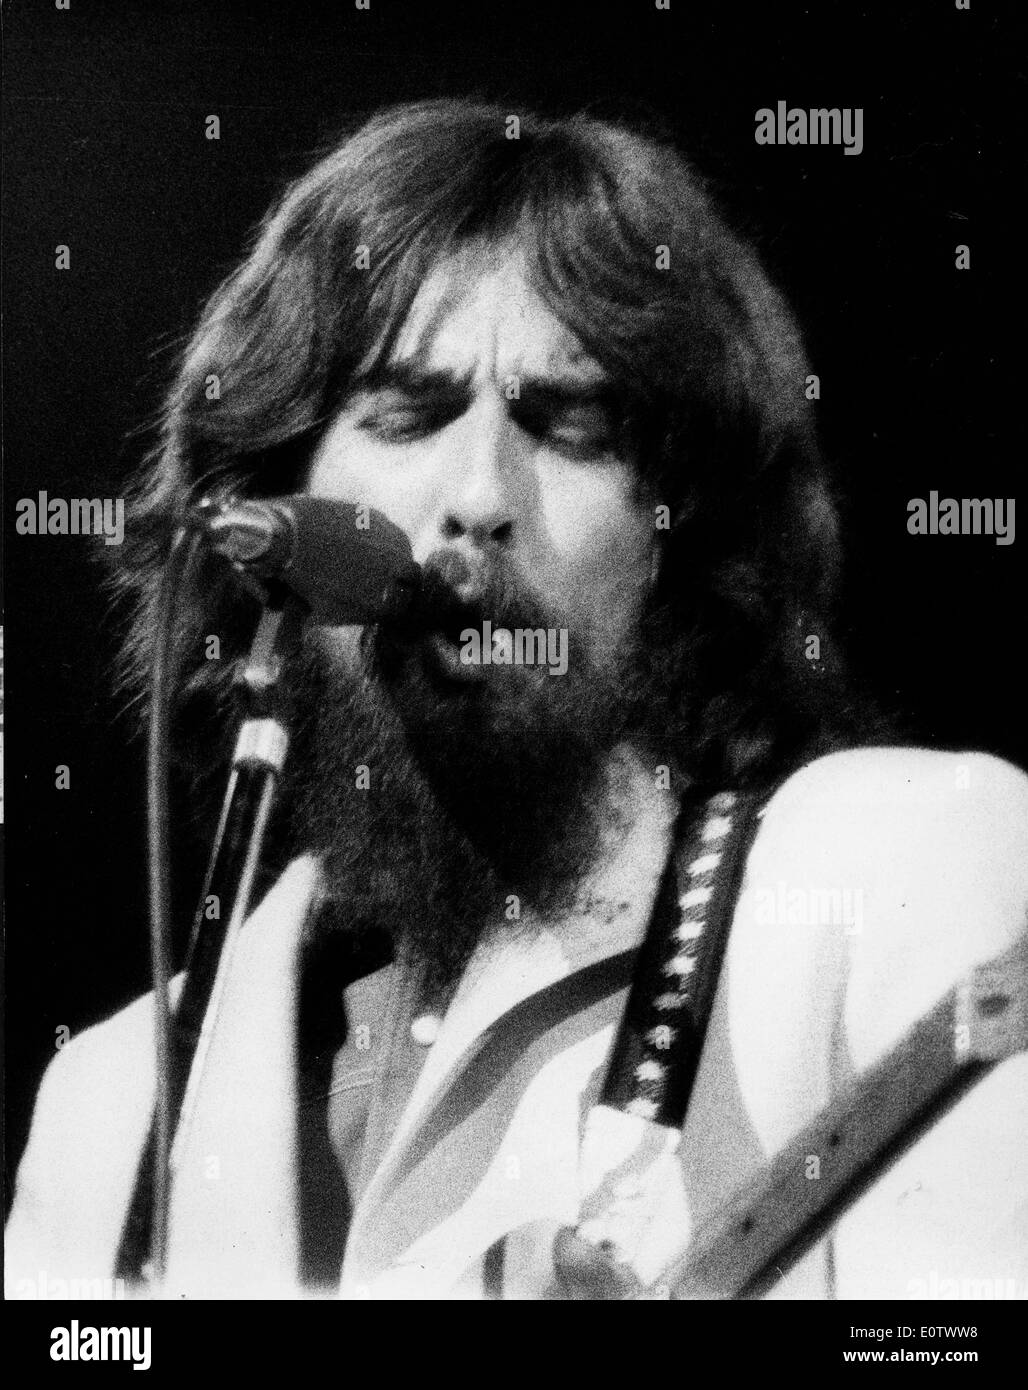 Beatle George Harrison during a performance - Stock Image